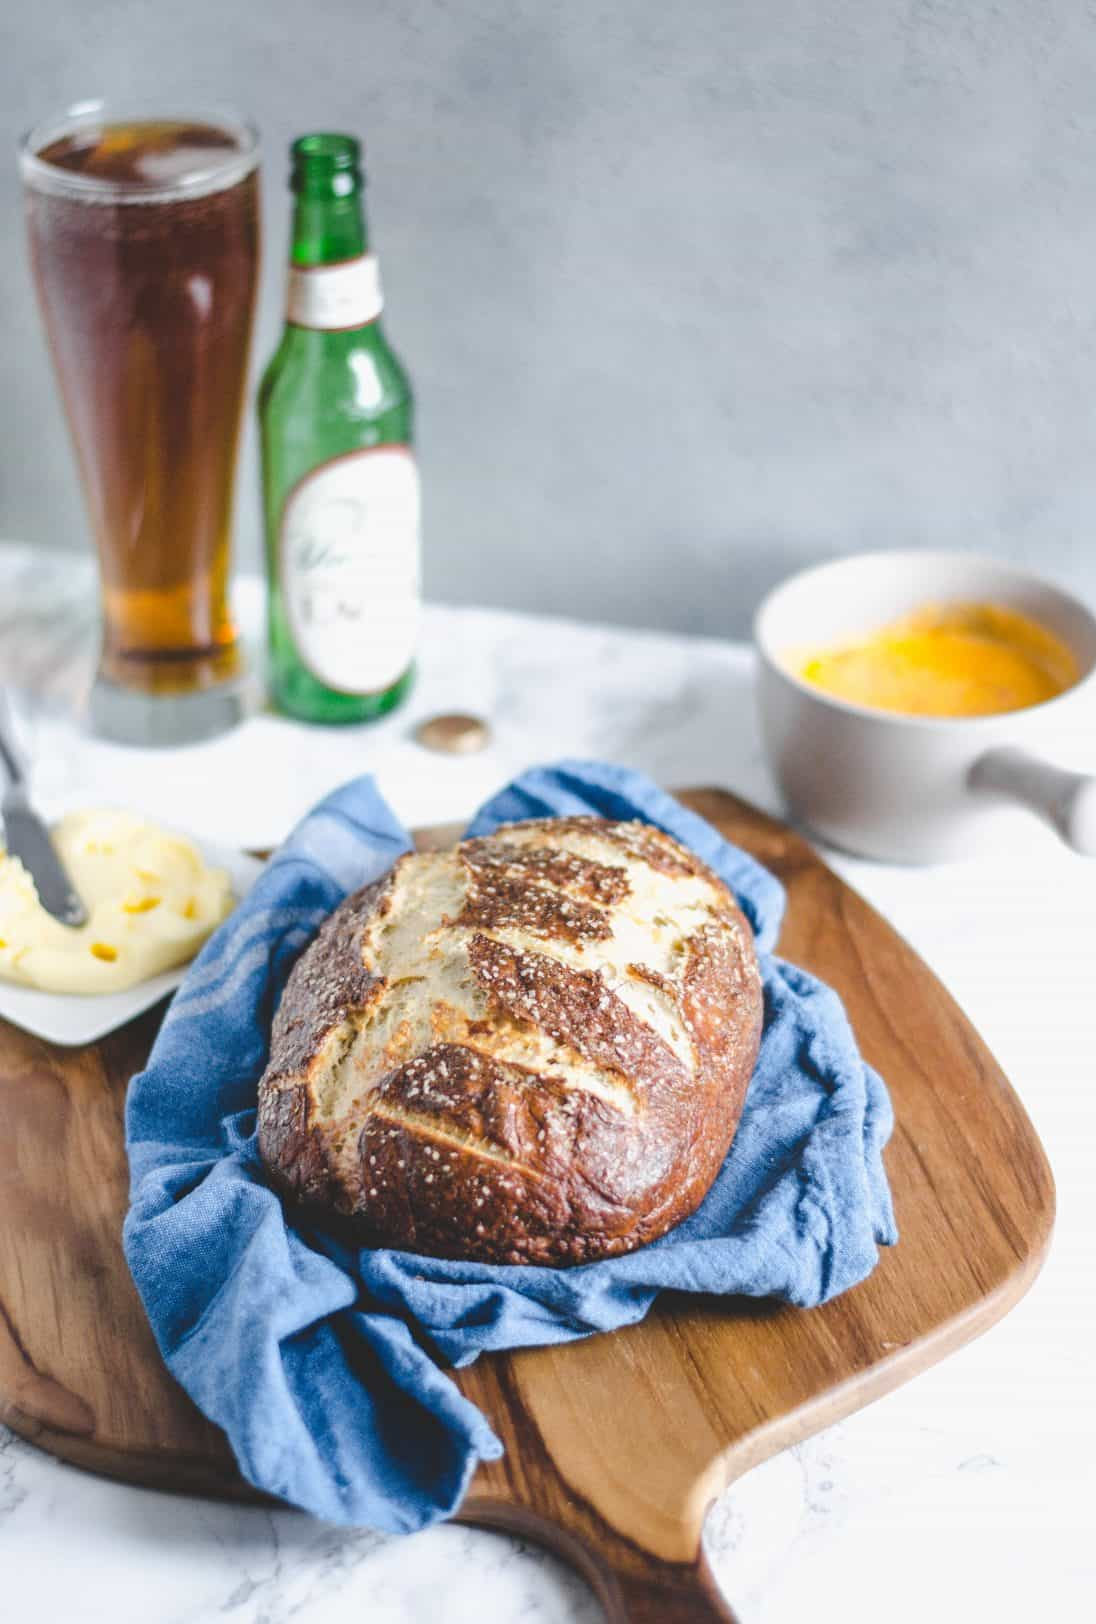 Pretzel bread with pinemto beer cheese